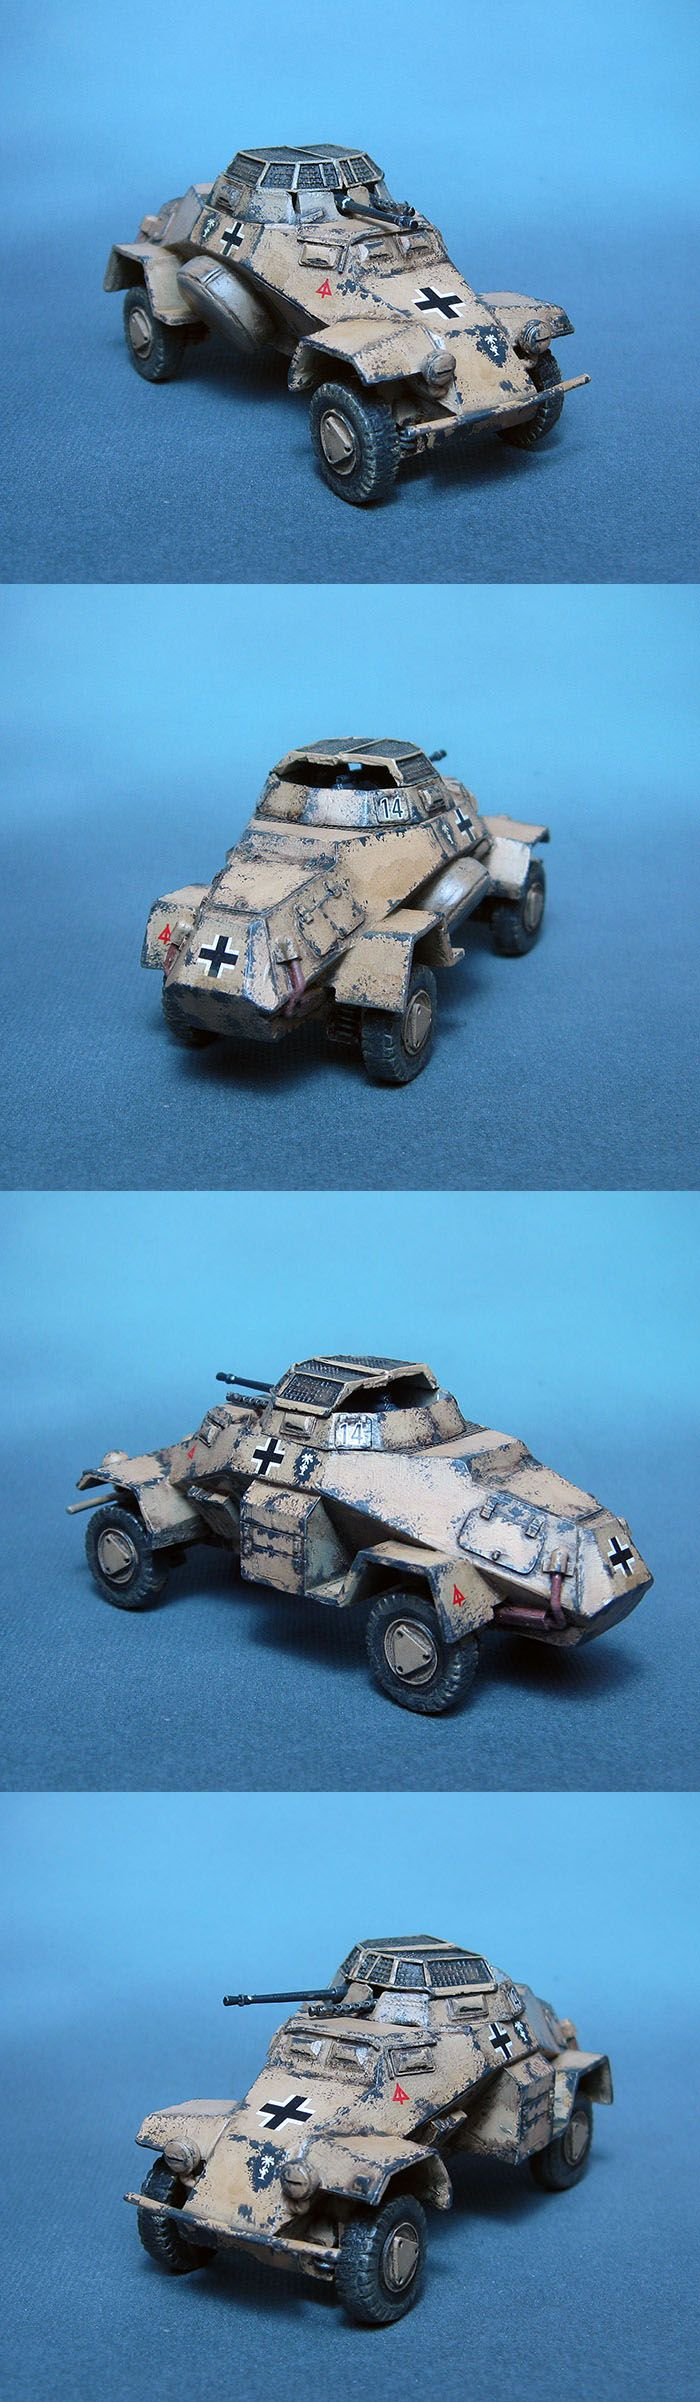 SdKfz 222 2cm Recce 15. PzD Afrika Korps Scale: 1/56(28mm) Manufacturer: Warlord Games UK Game: BOLT ACTION Painted by: OMP(Olsianon Miniatures Painting)